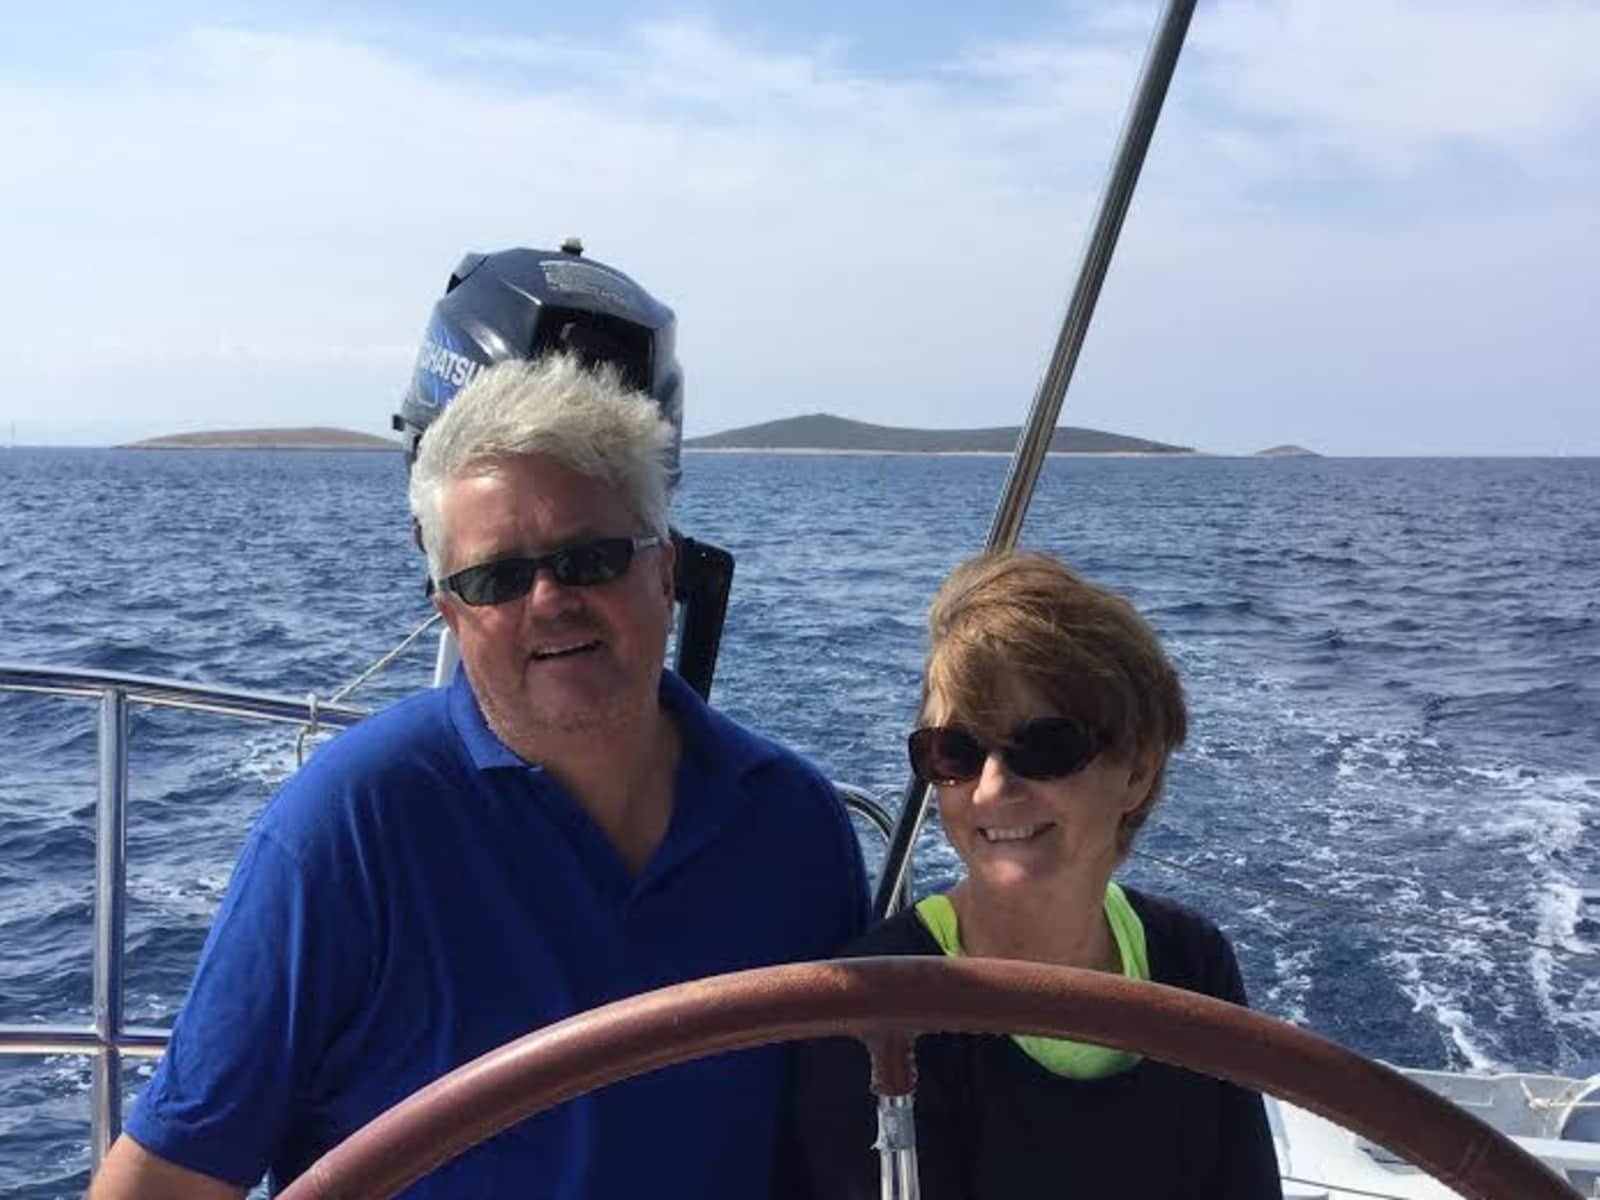 John & Lesley from Sevenoaks, United Kingdom